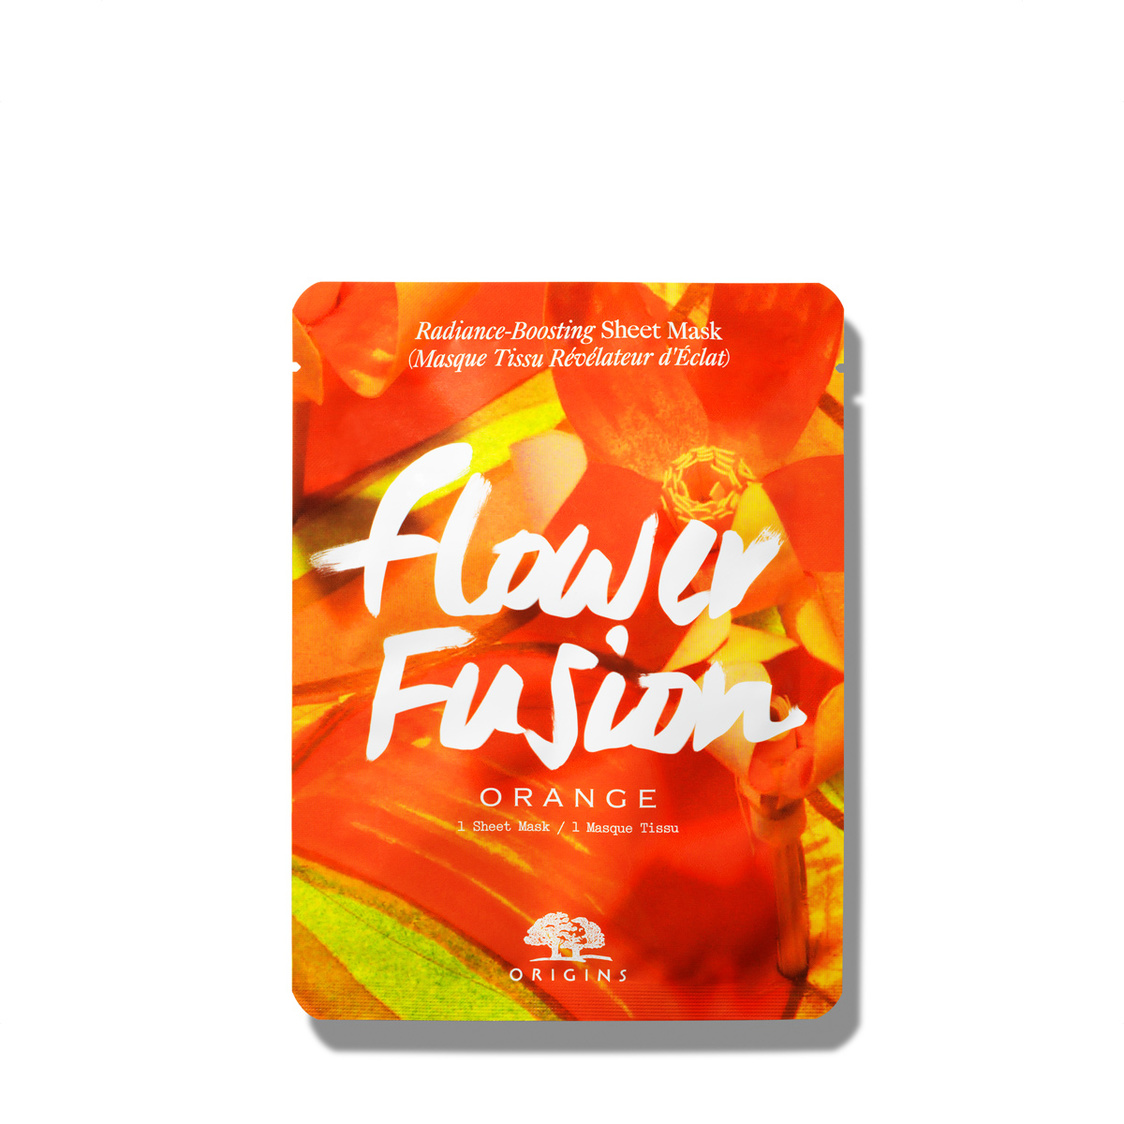 Origins Flower Fusion Radiance-Boosting Sheet Mask Orange